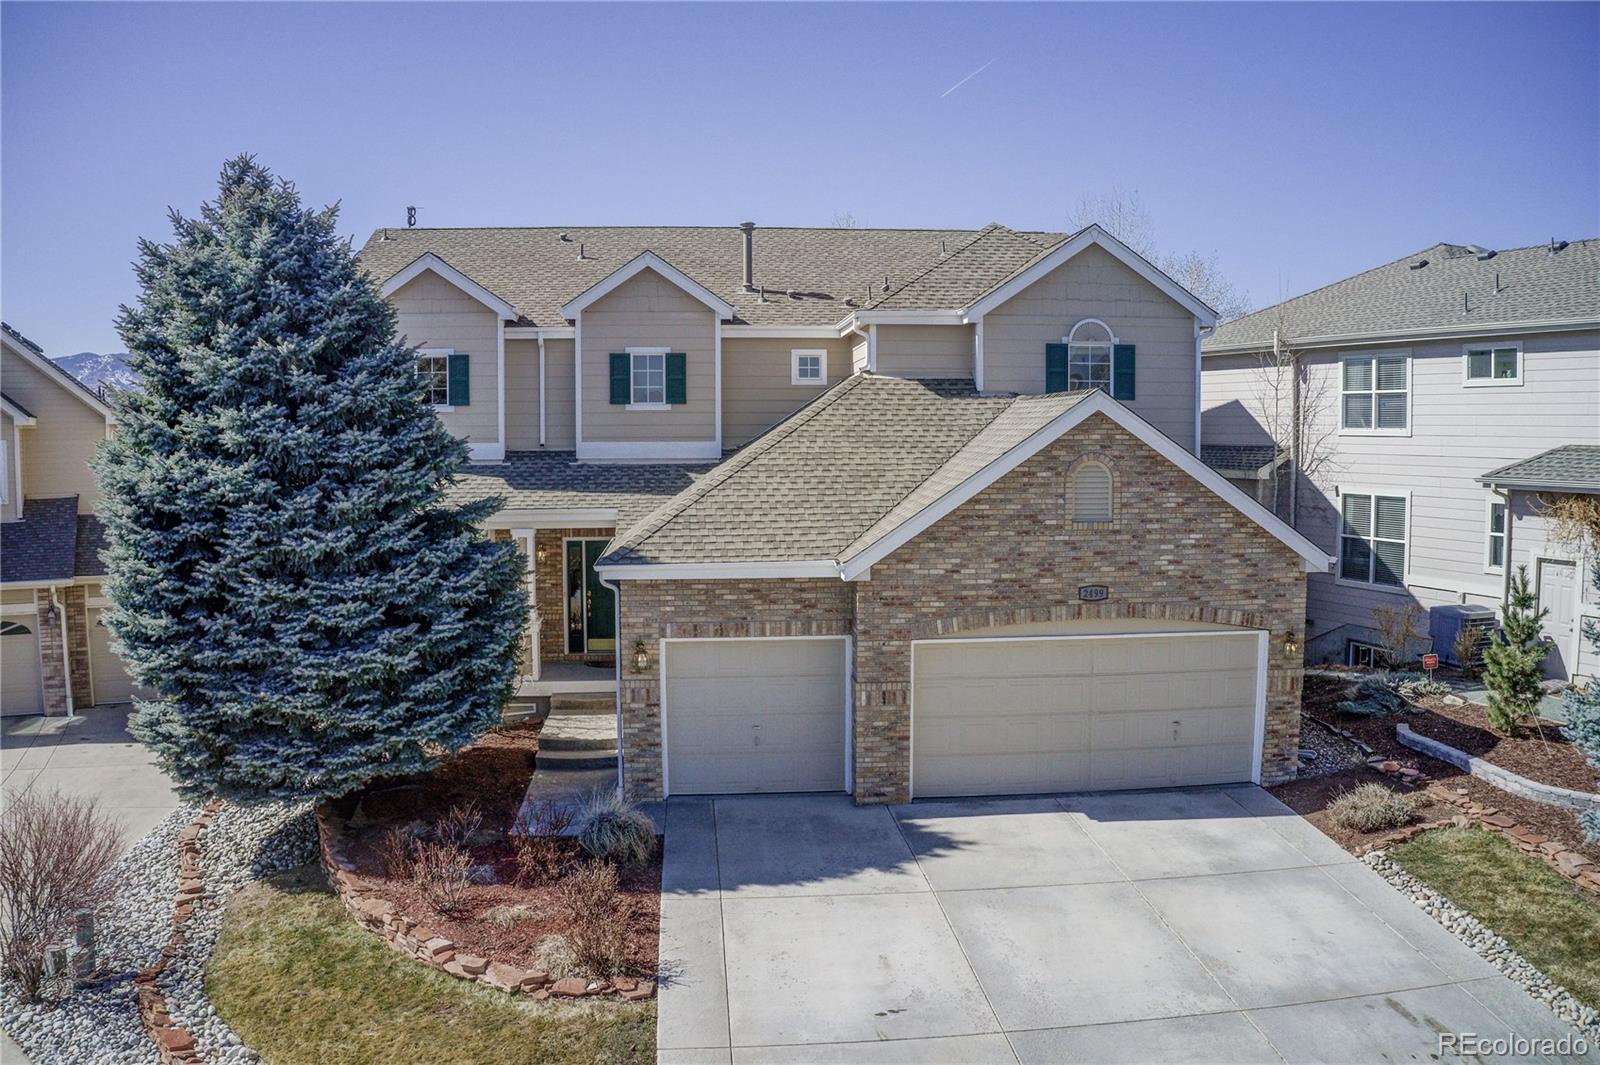 2499 S Newcombe Street Property Photo - Lakewood, CO real estate listing